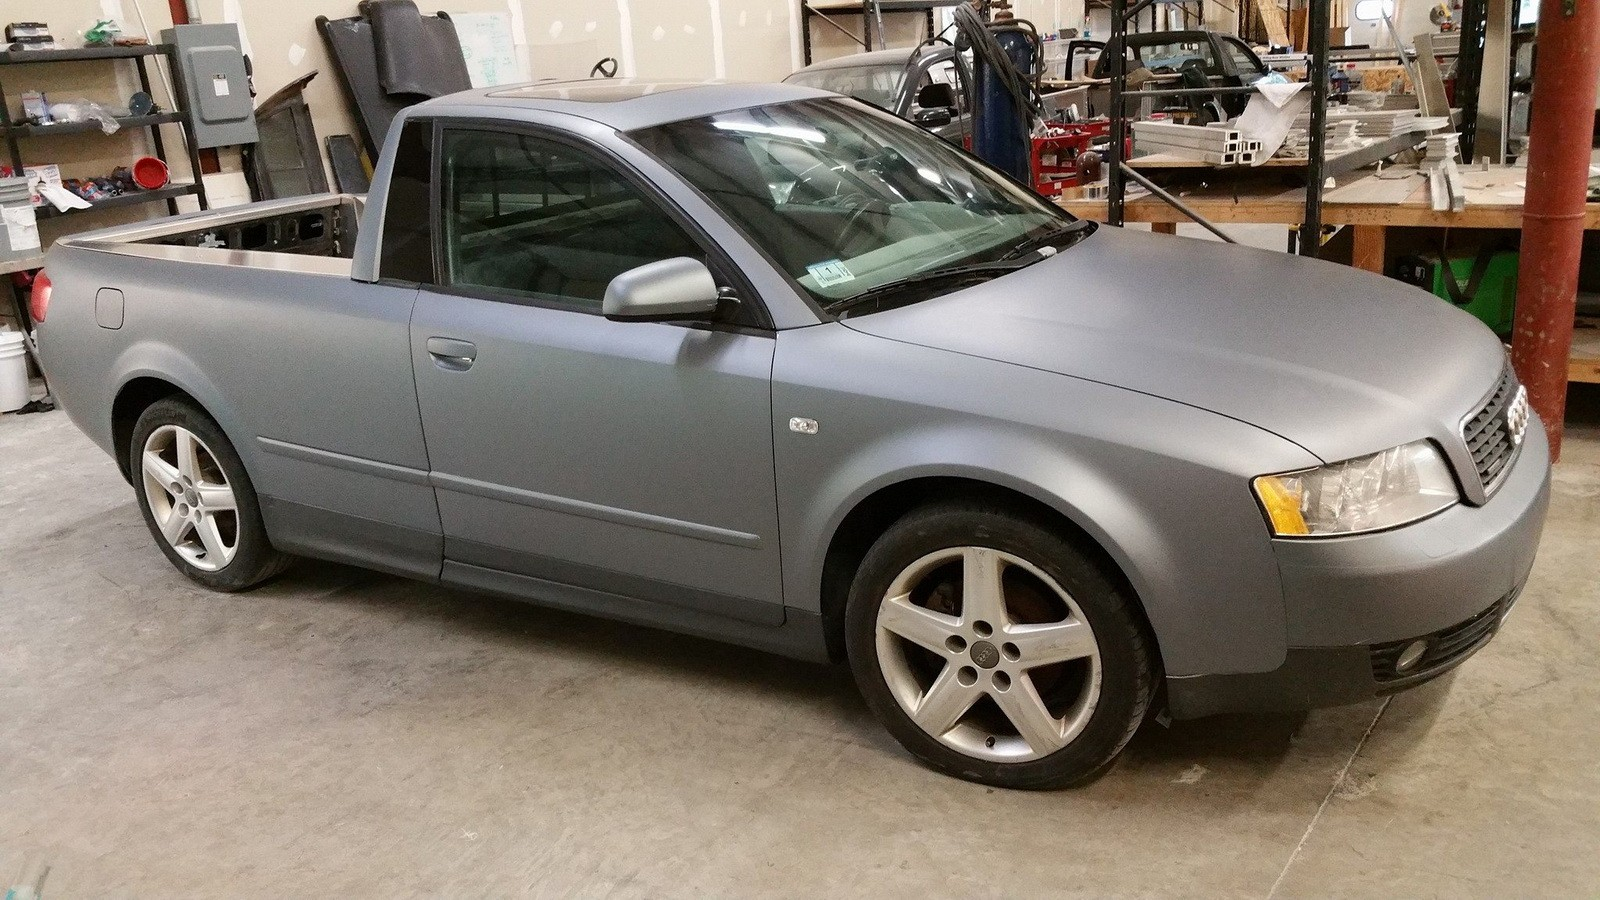 Vw Jetta Truck >> Audi S4 Pickup Truck Is Real: Smyth Performance Makes ...